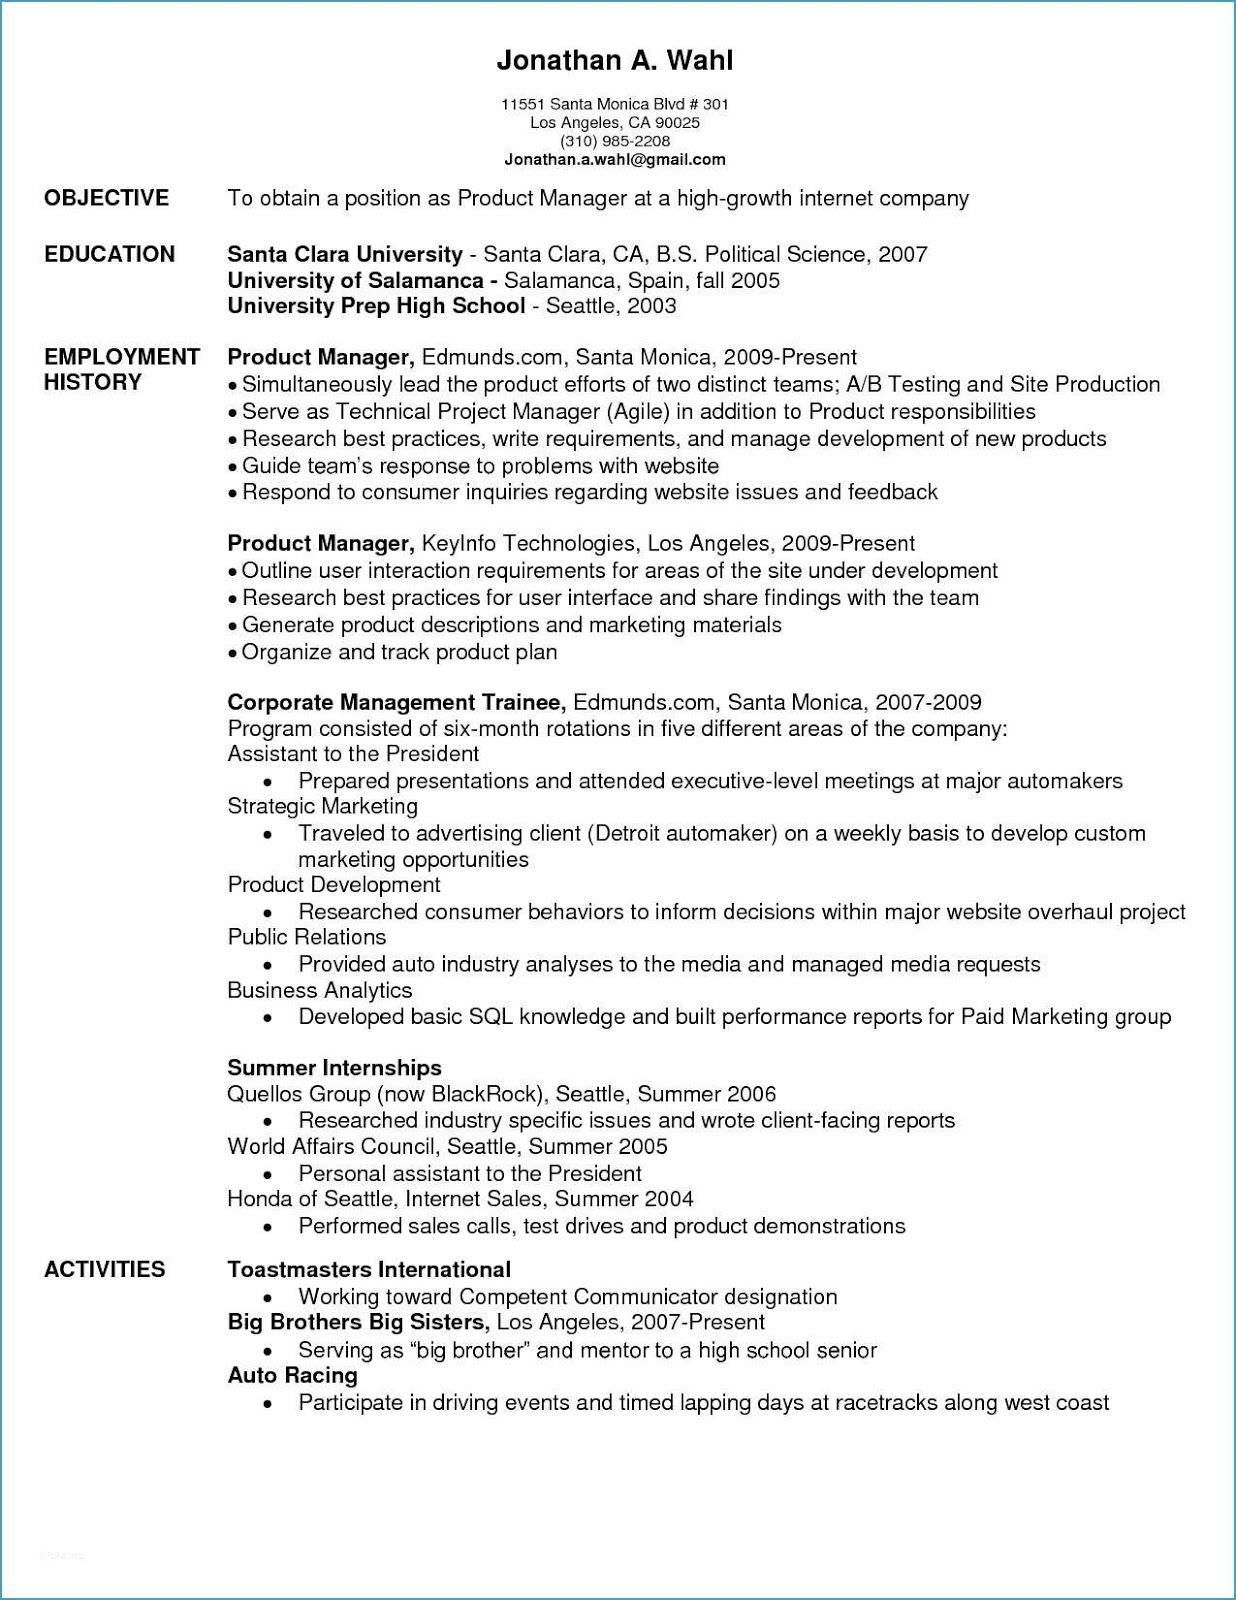 Product Manager Resume Sample Product Manager Resume Sample Pdf Product Manager Resume Sample India Product Manager Resume Sample Resume Marketing Software